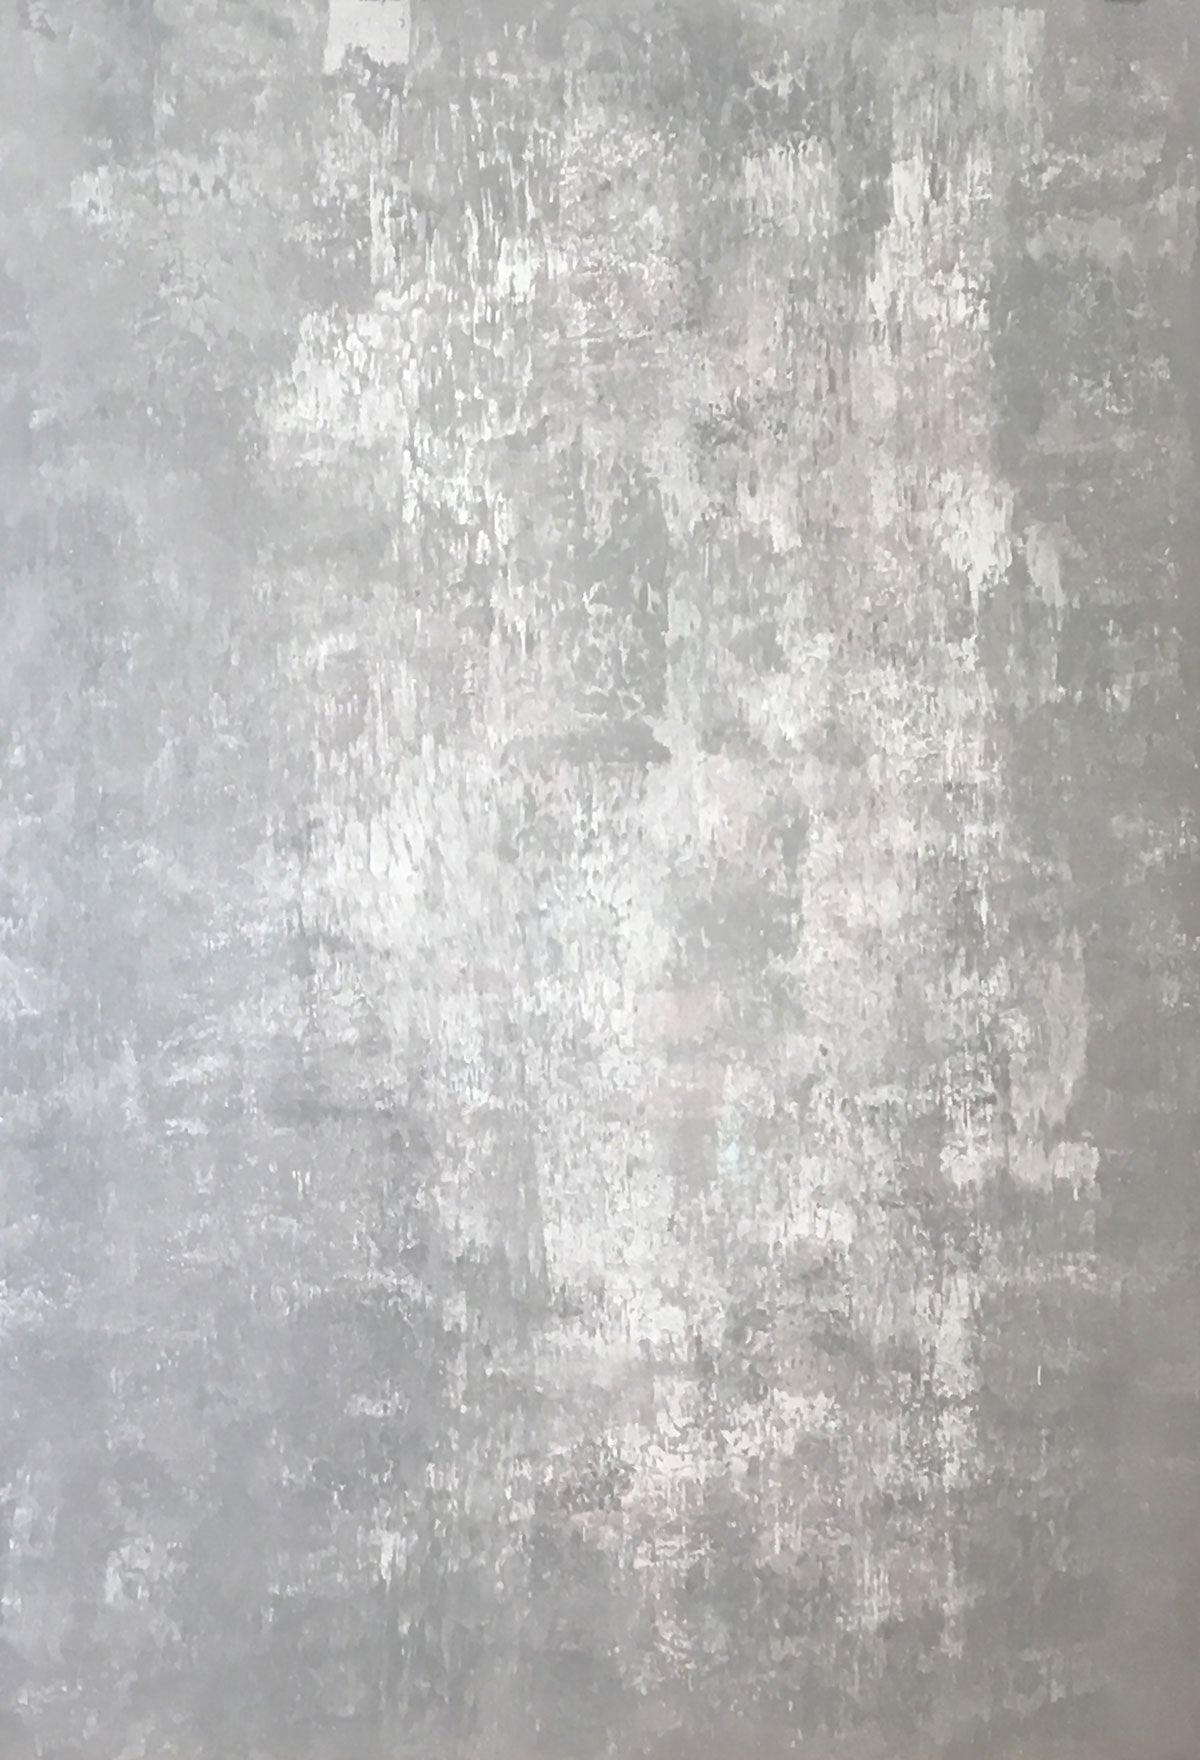 Clotstudio Abstract Lighting Grey Black Texture Hand Painted Canvas Backdrop #clot 17